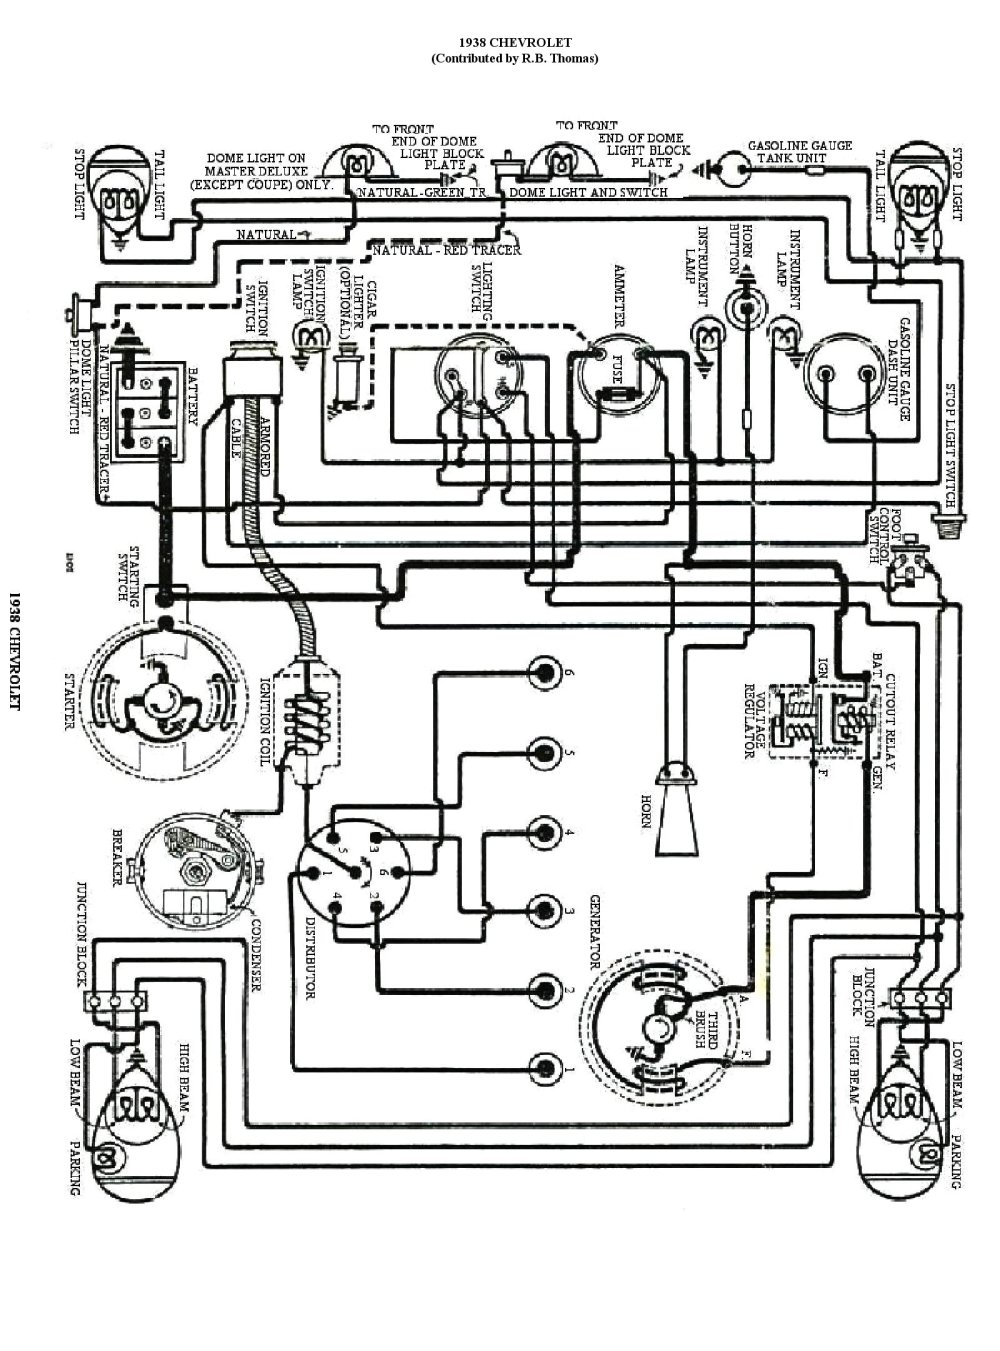 medium resolution of 1937 dodge wiring diagram wiring diagrams my 1937 dodge wire diagram